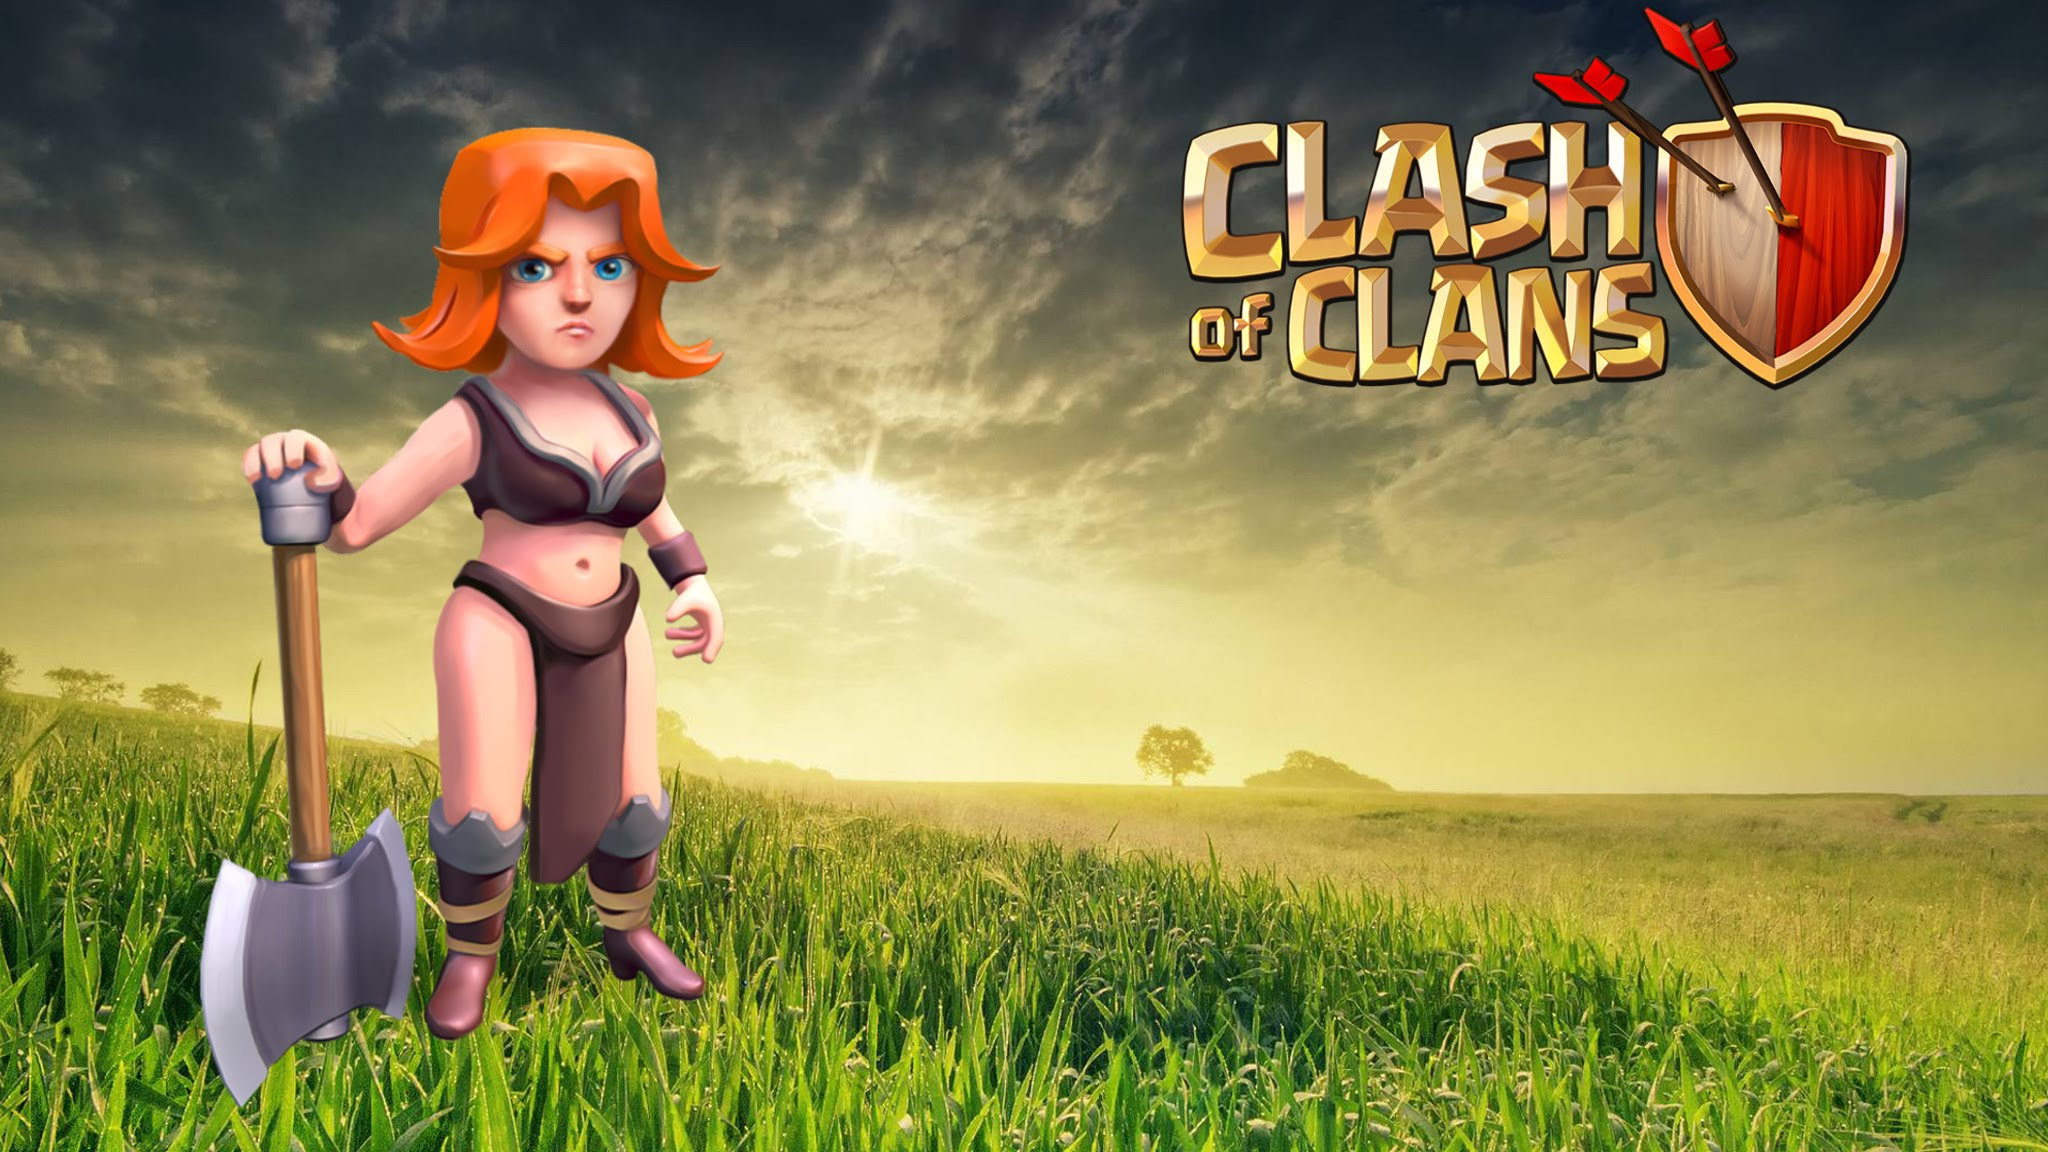 Clash Of Clans Wallpapers and Photos 4K Full HD Everest Hill 2048x1152